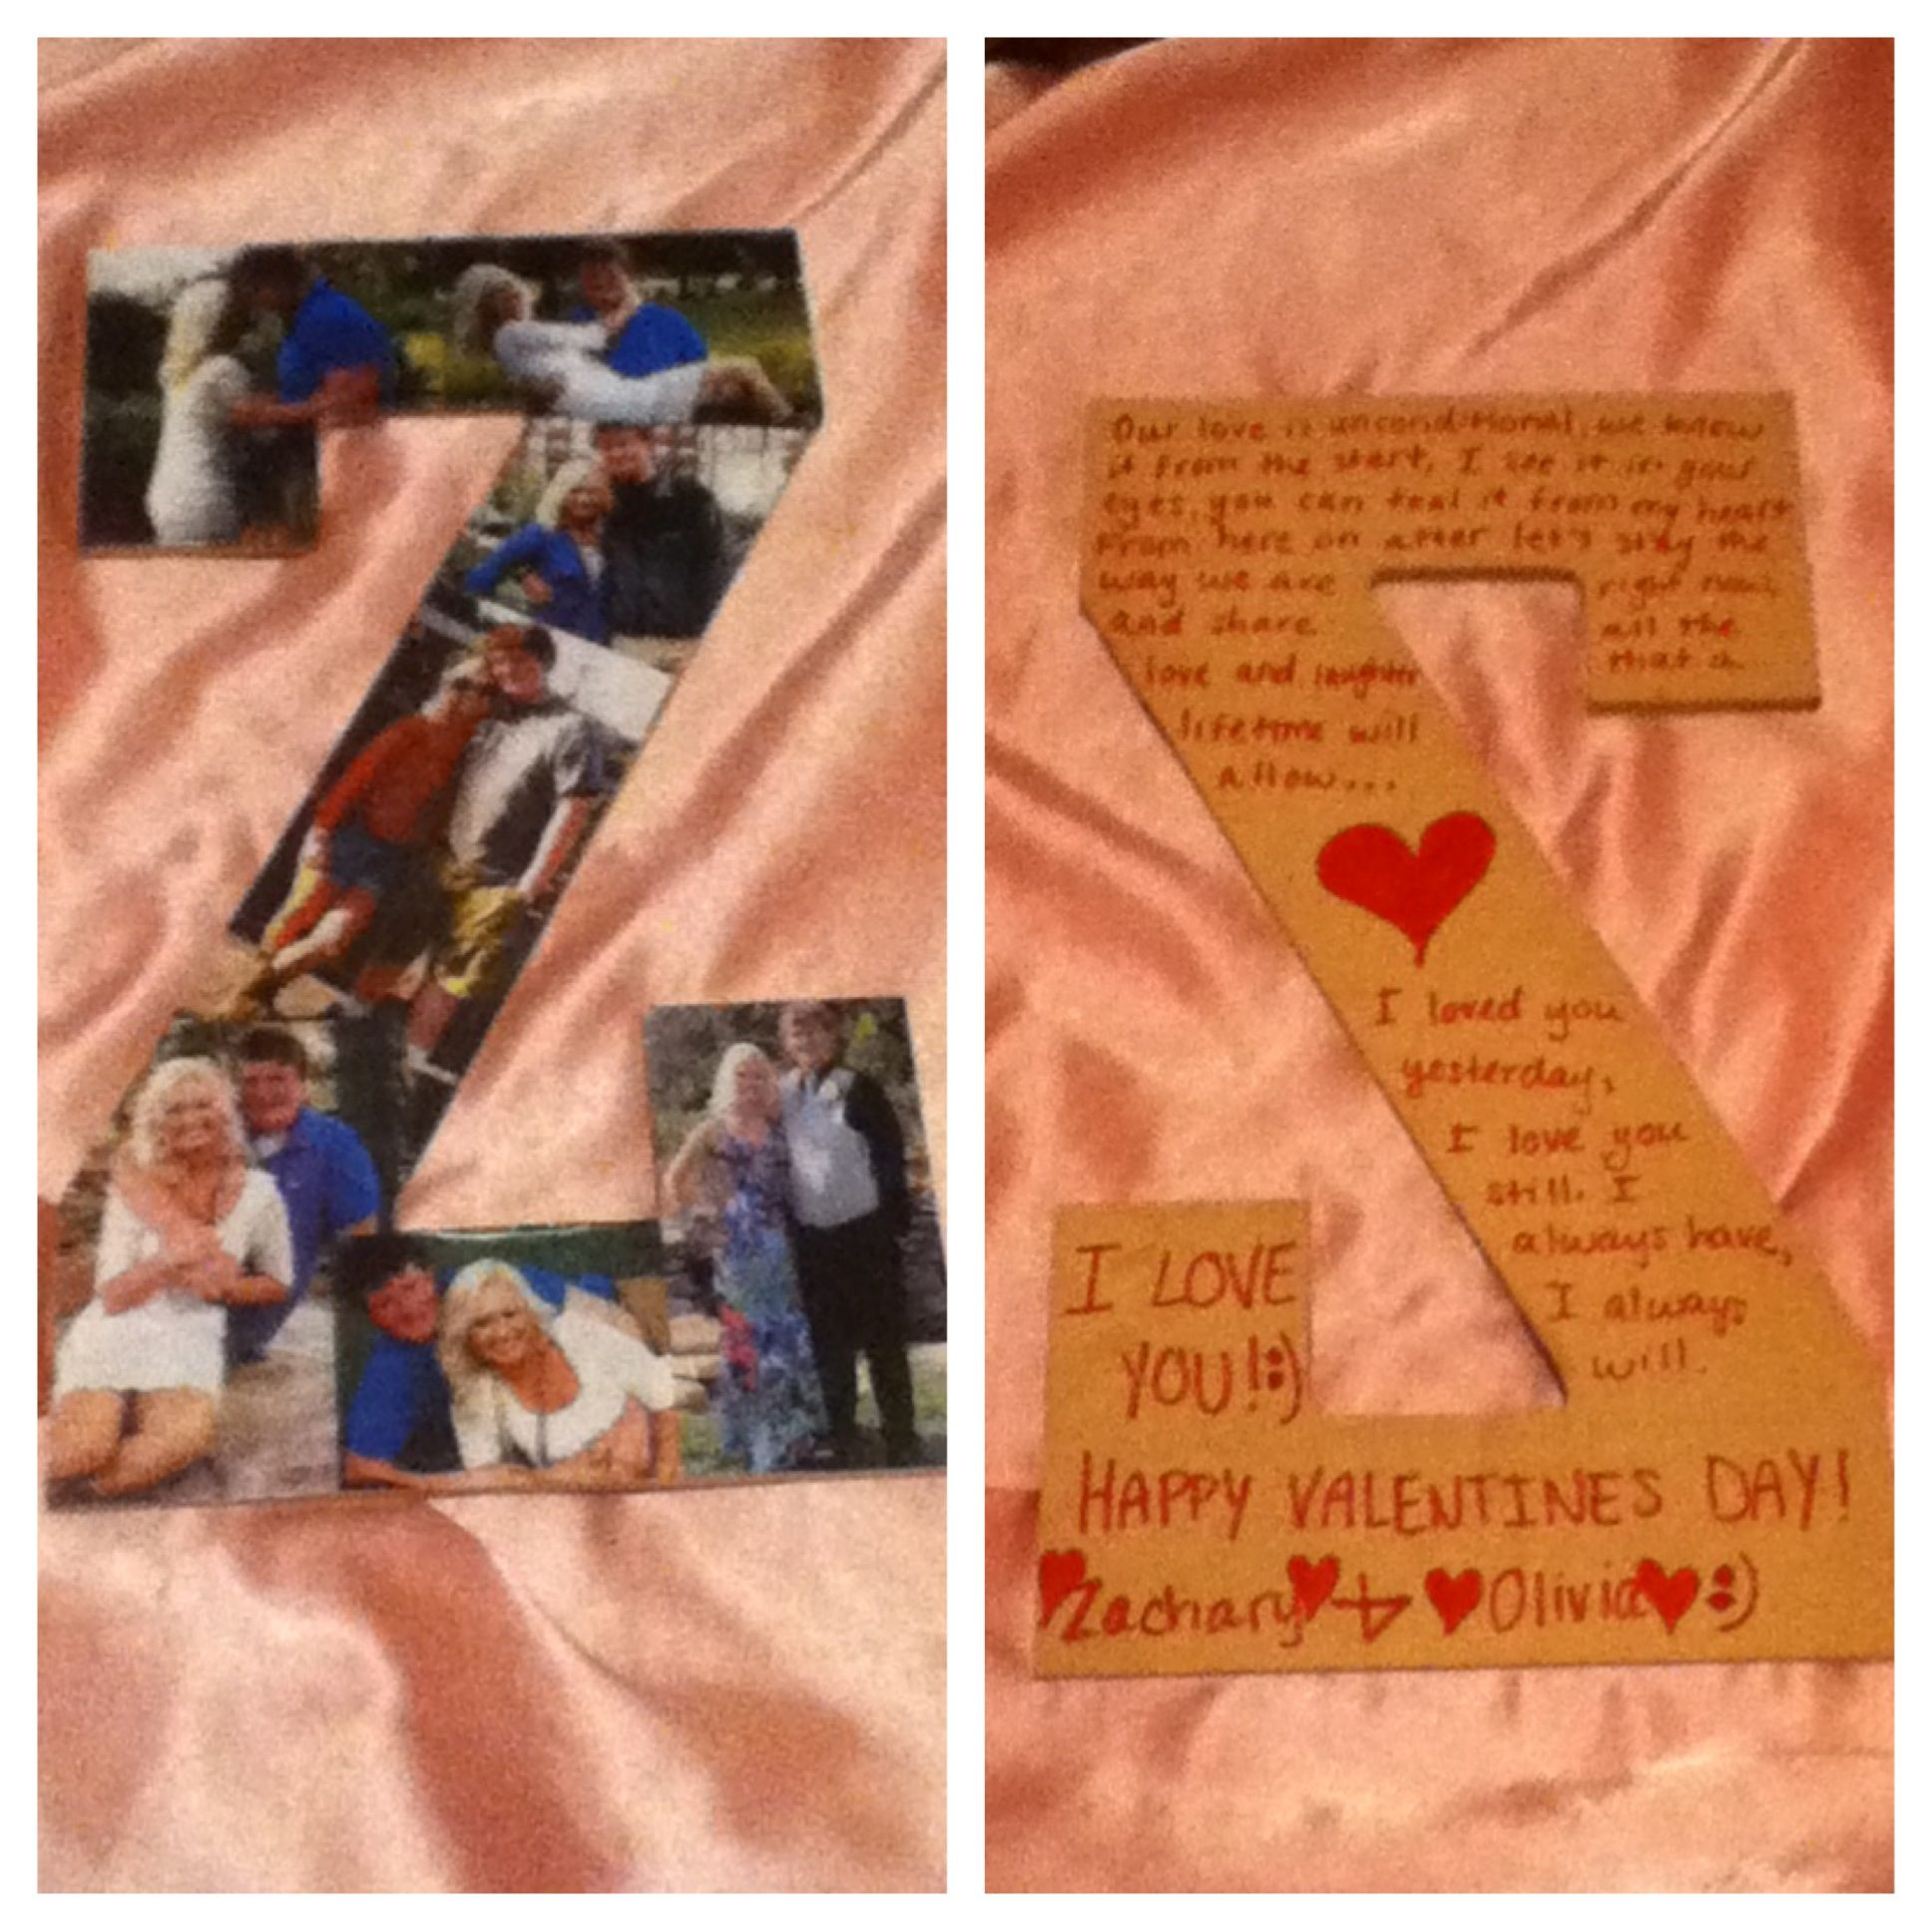 The Valentineu0027s Day Present I Made For My Boyfriend:):)